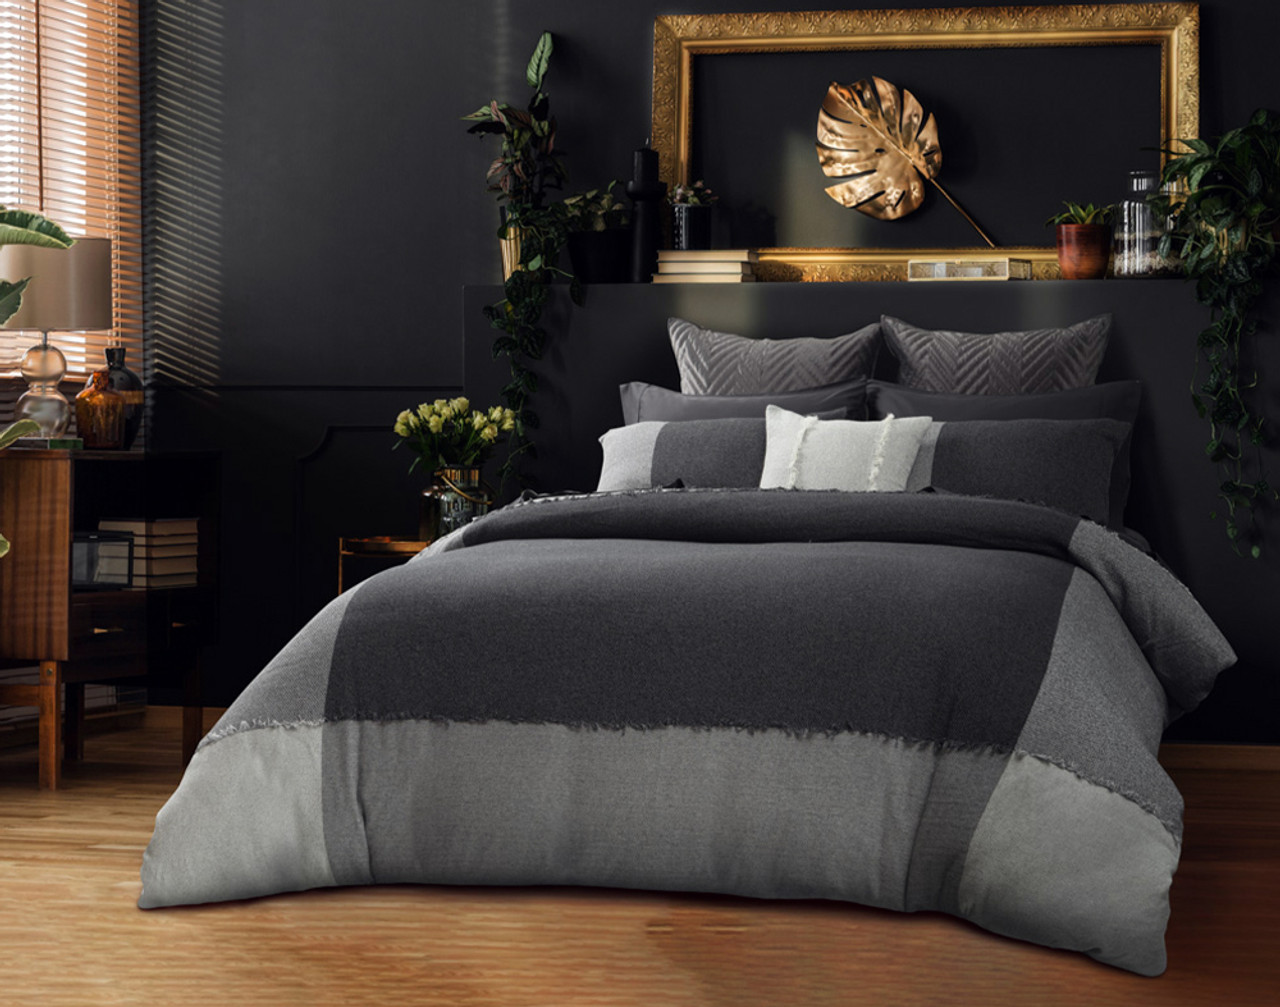 Angled view of Thoren Bedding Collection, featuring the Thoren Duvet Cover, Thoren Pillow Shams, and Thoren Square Cushion Cover